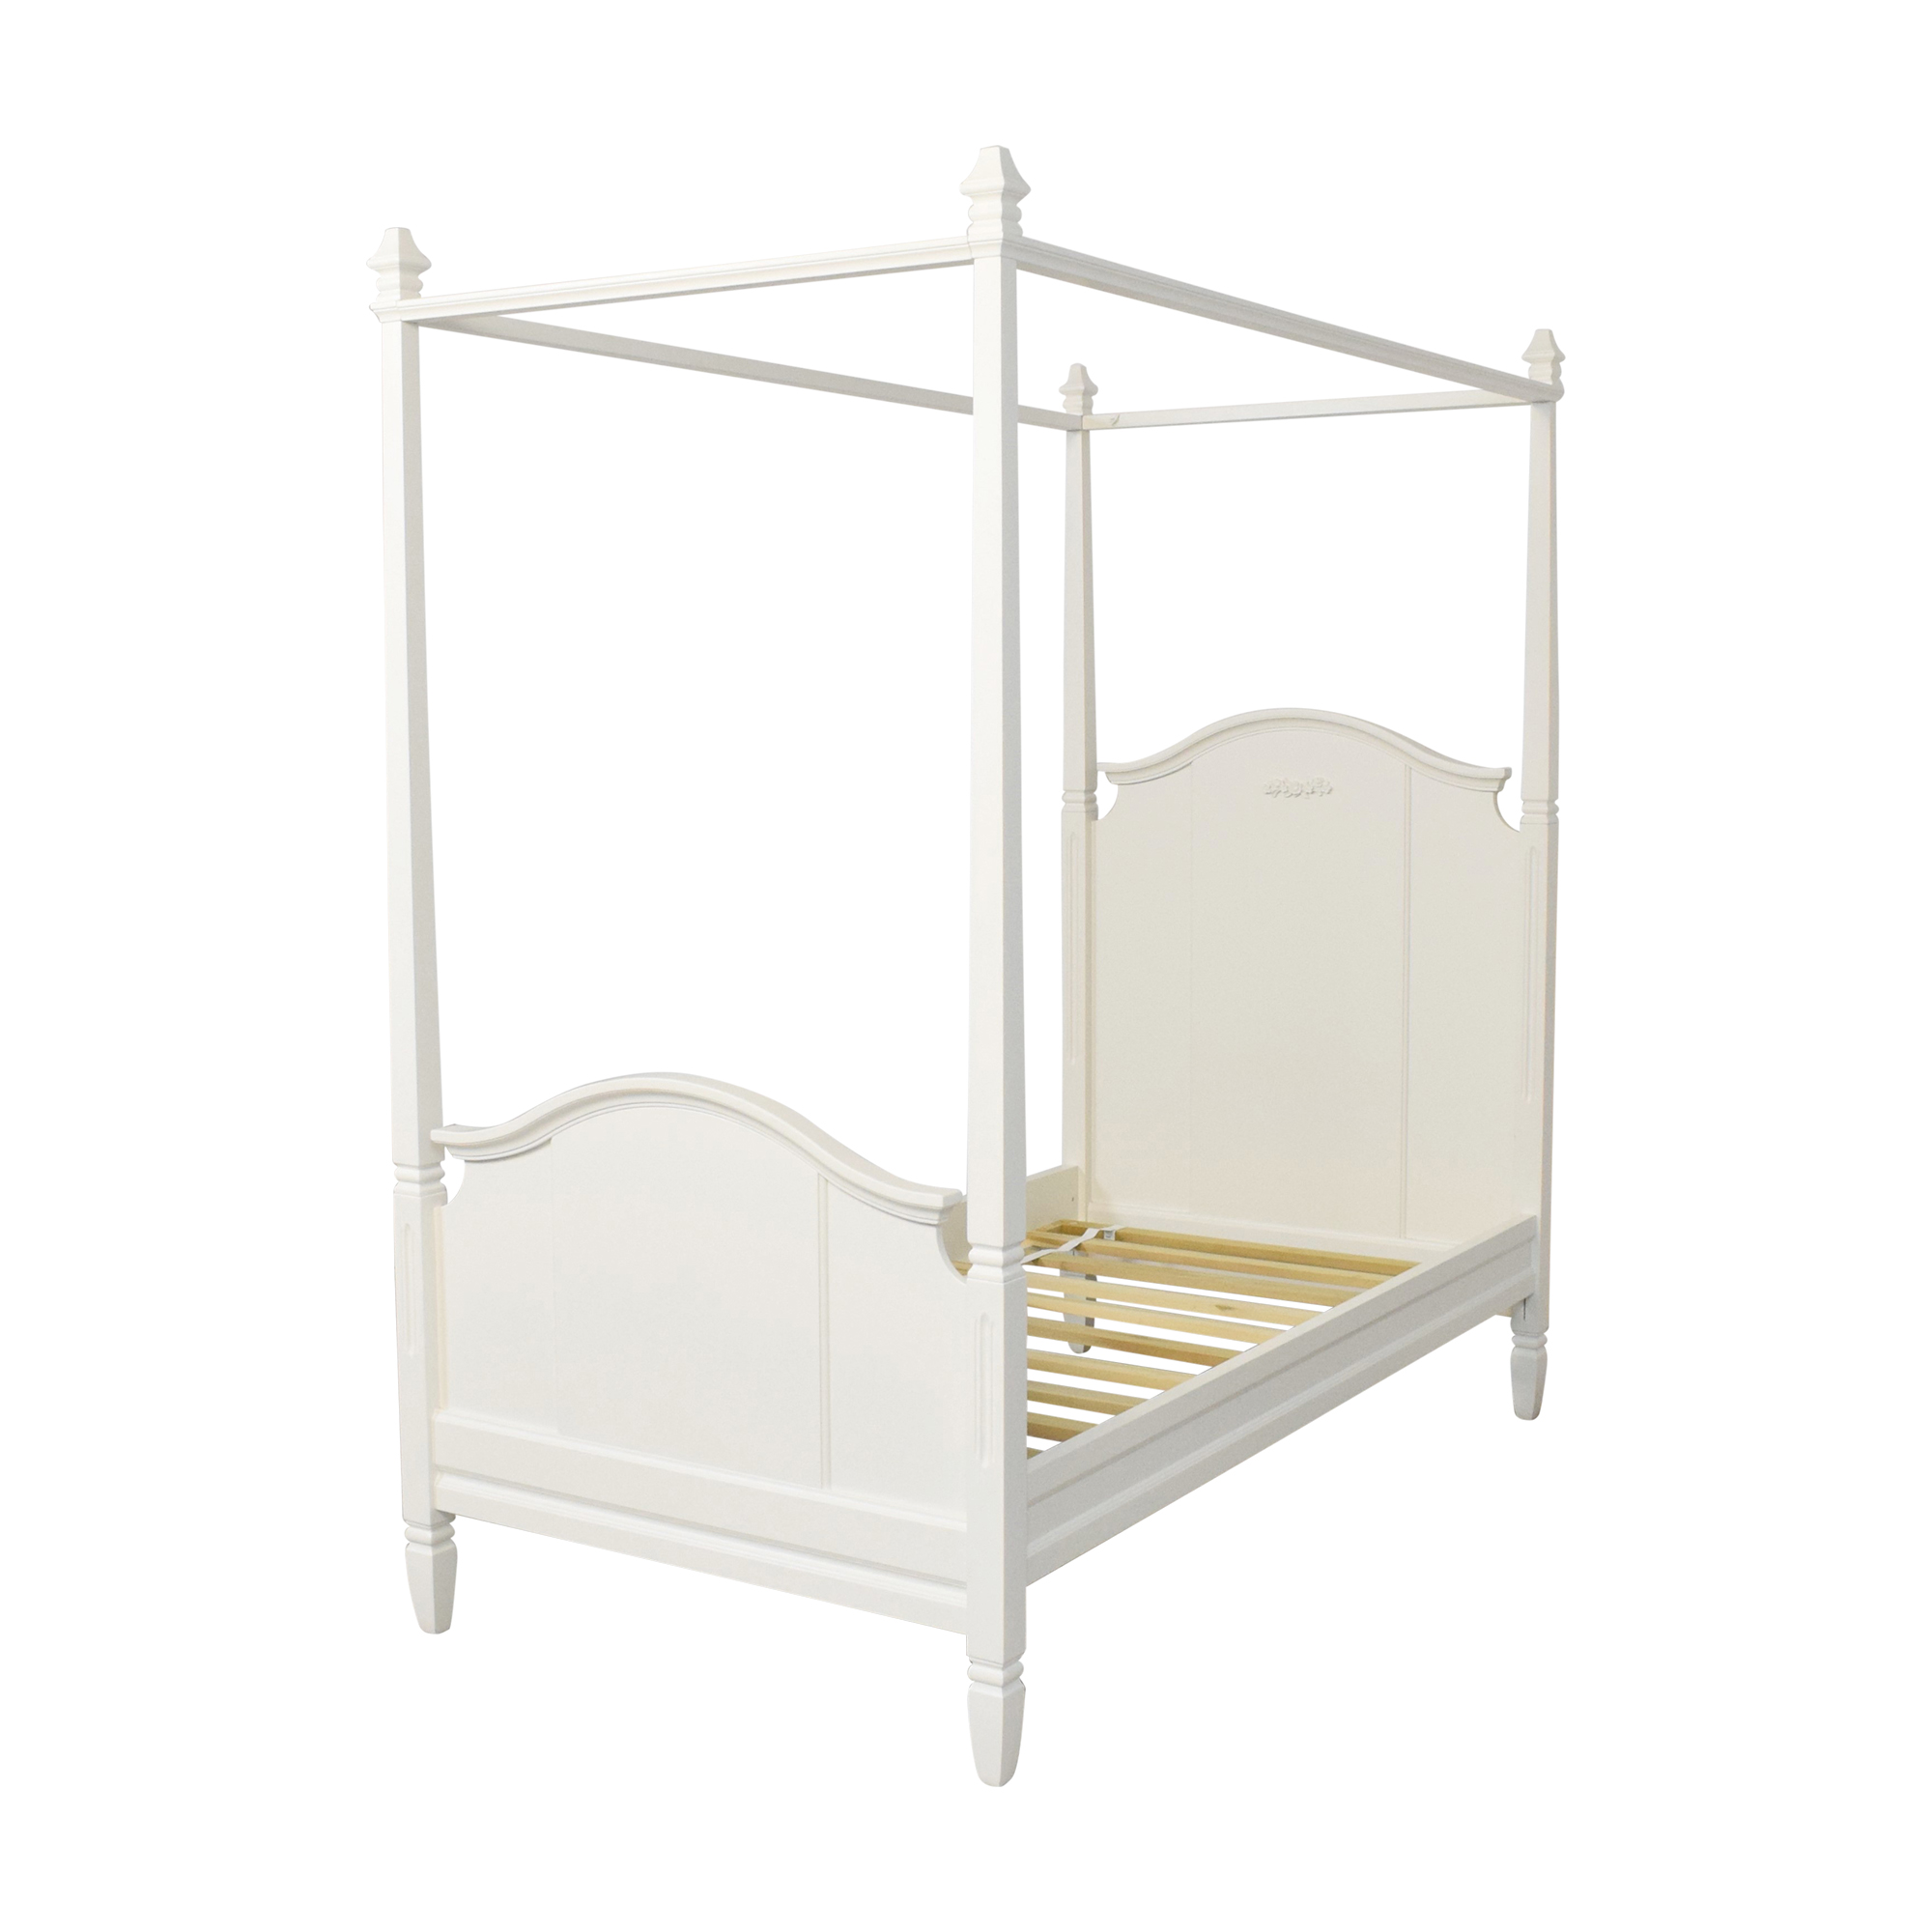 68 off pottery barn kids pottery barn kids madeline canopy twin bed beds